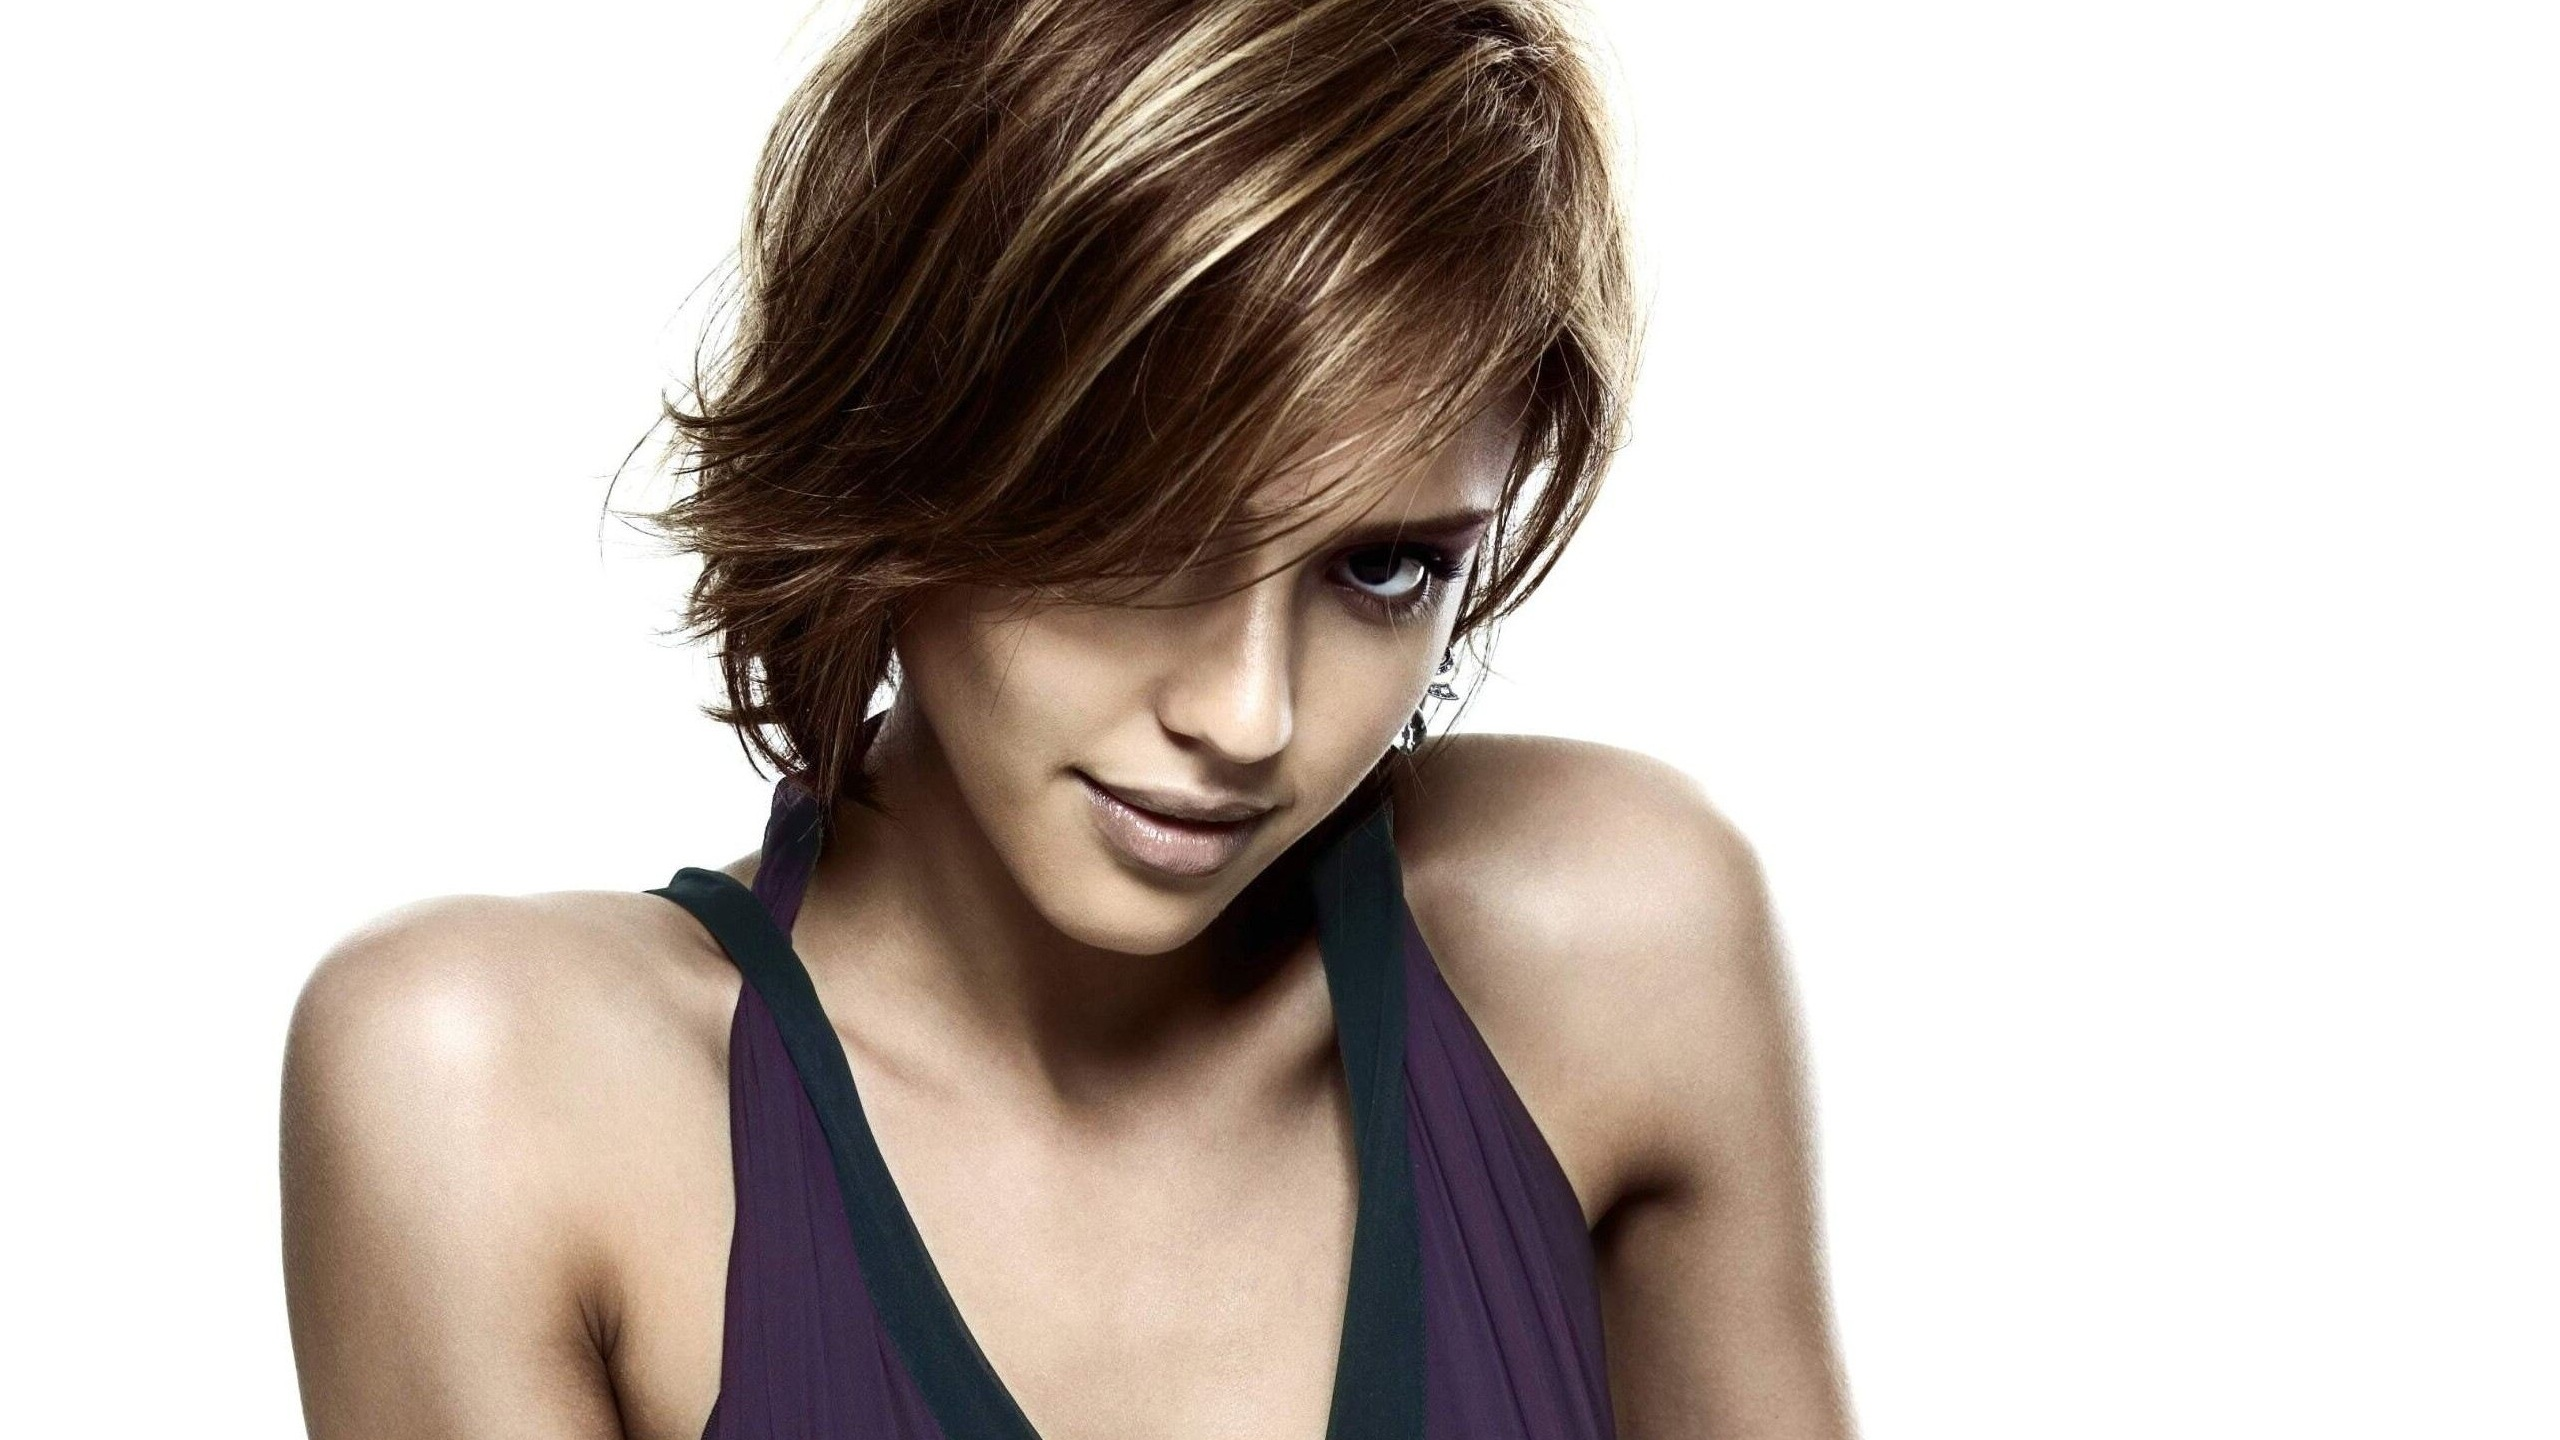 jessica alba picture wallpaper high definition high